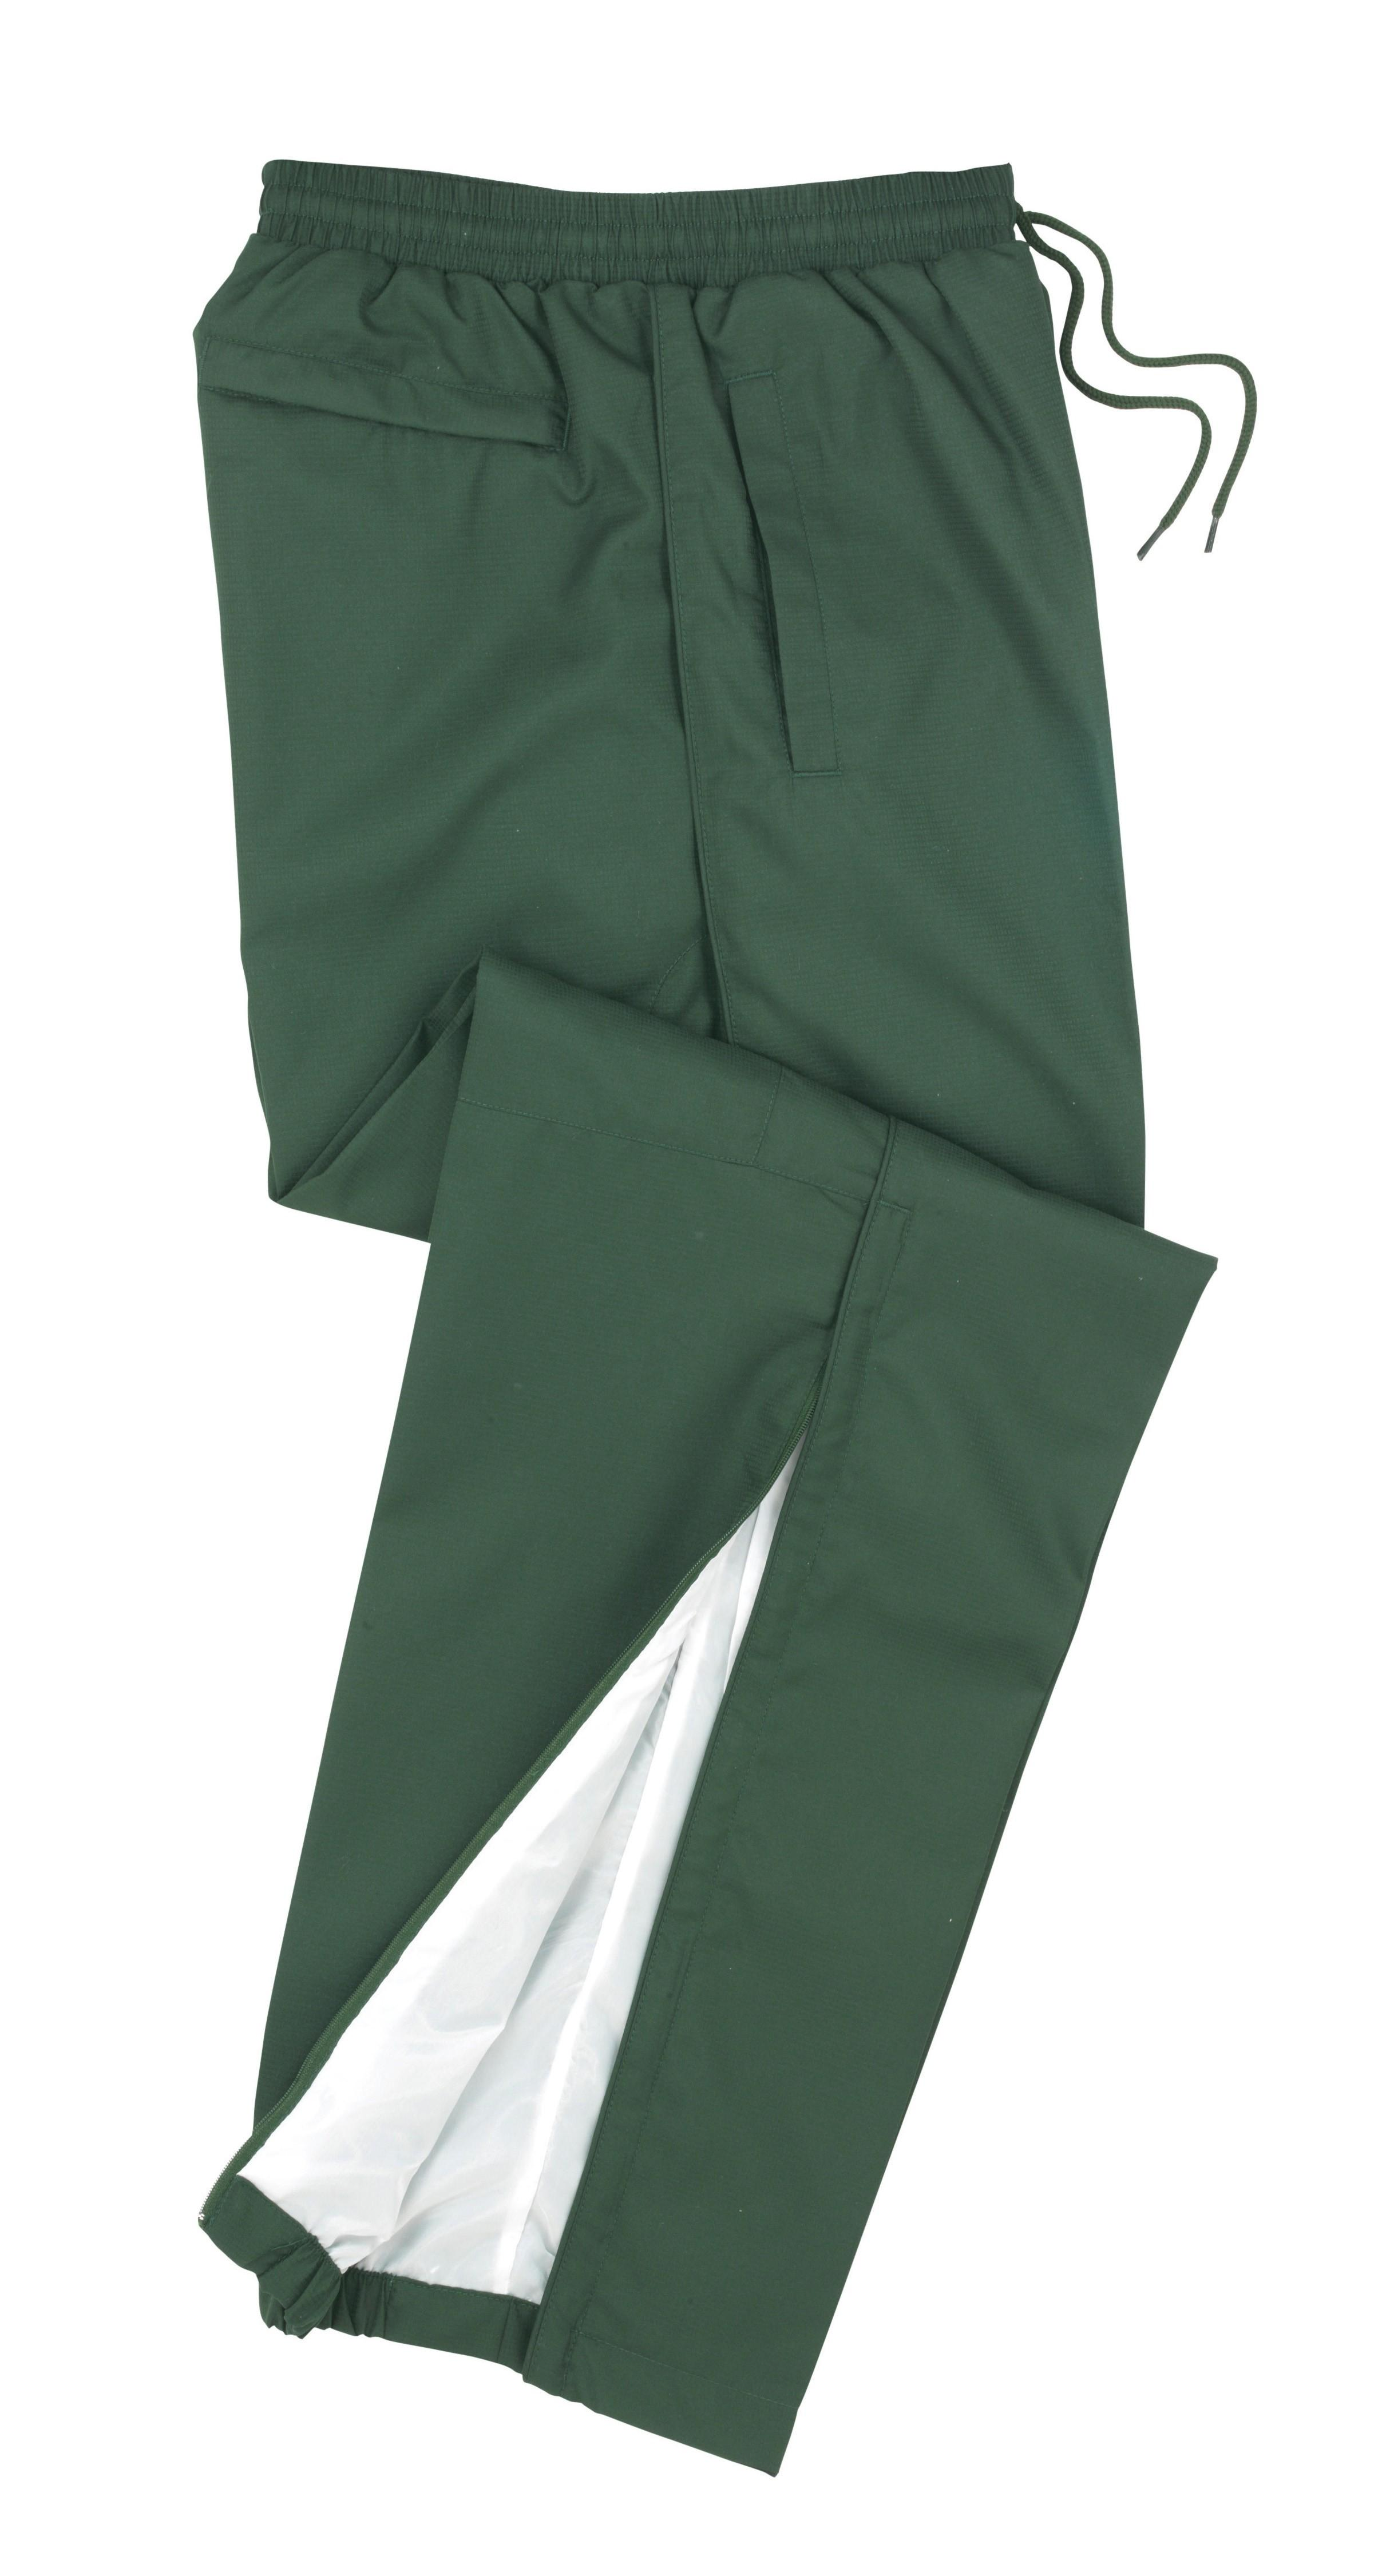 Flash Unisex Track Bottoms - Green Only